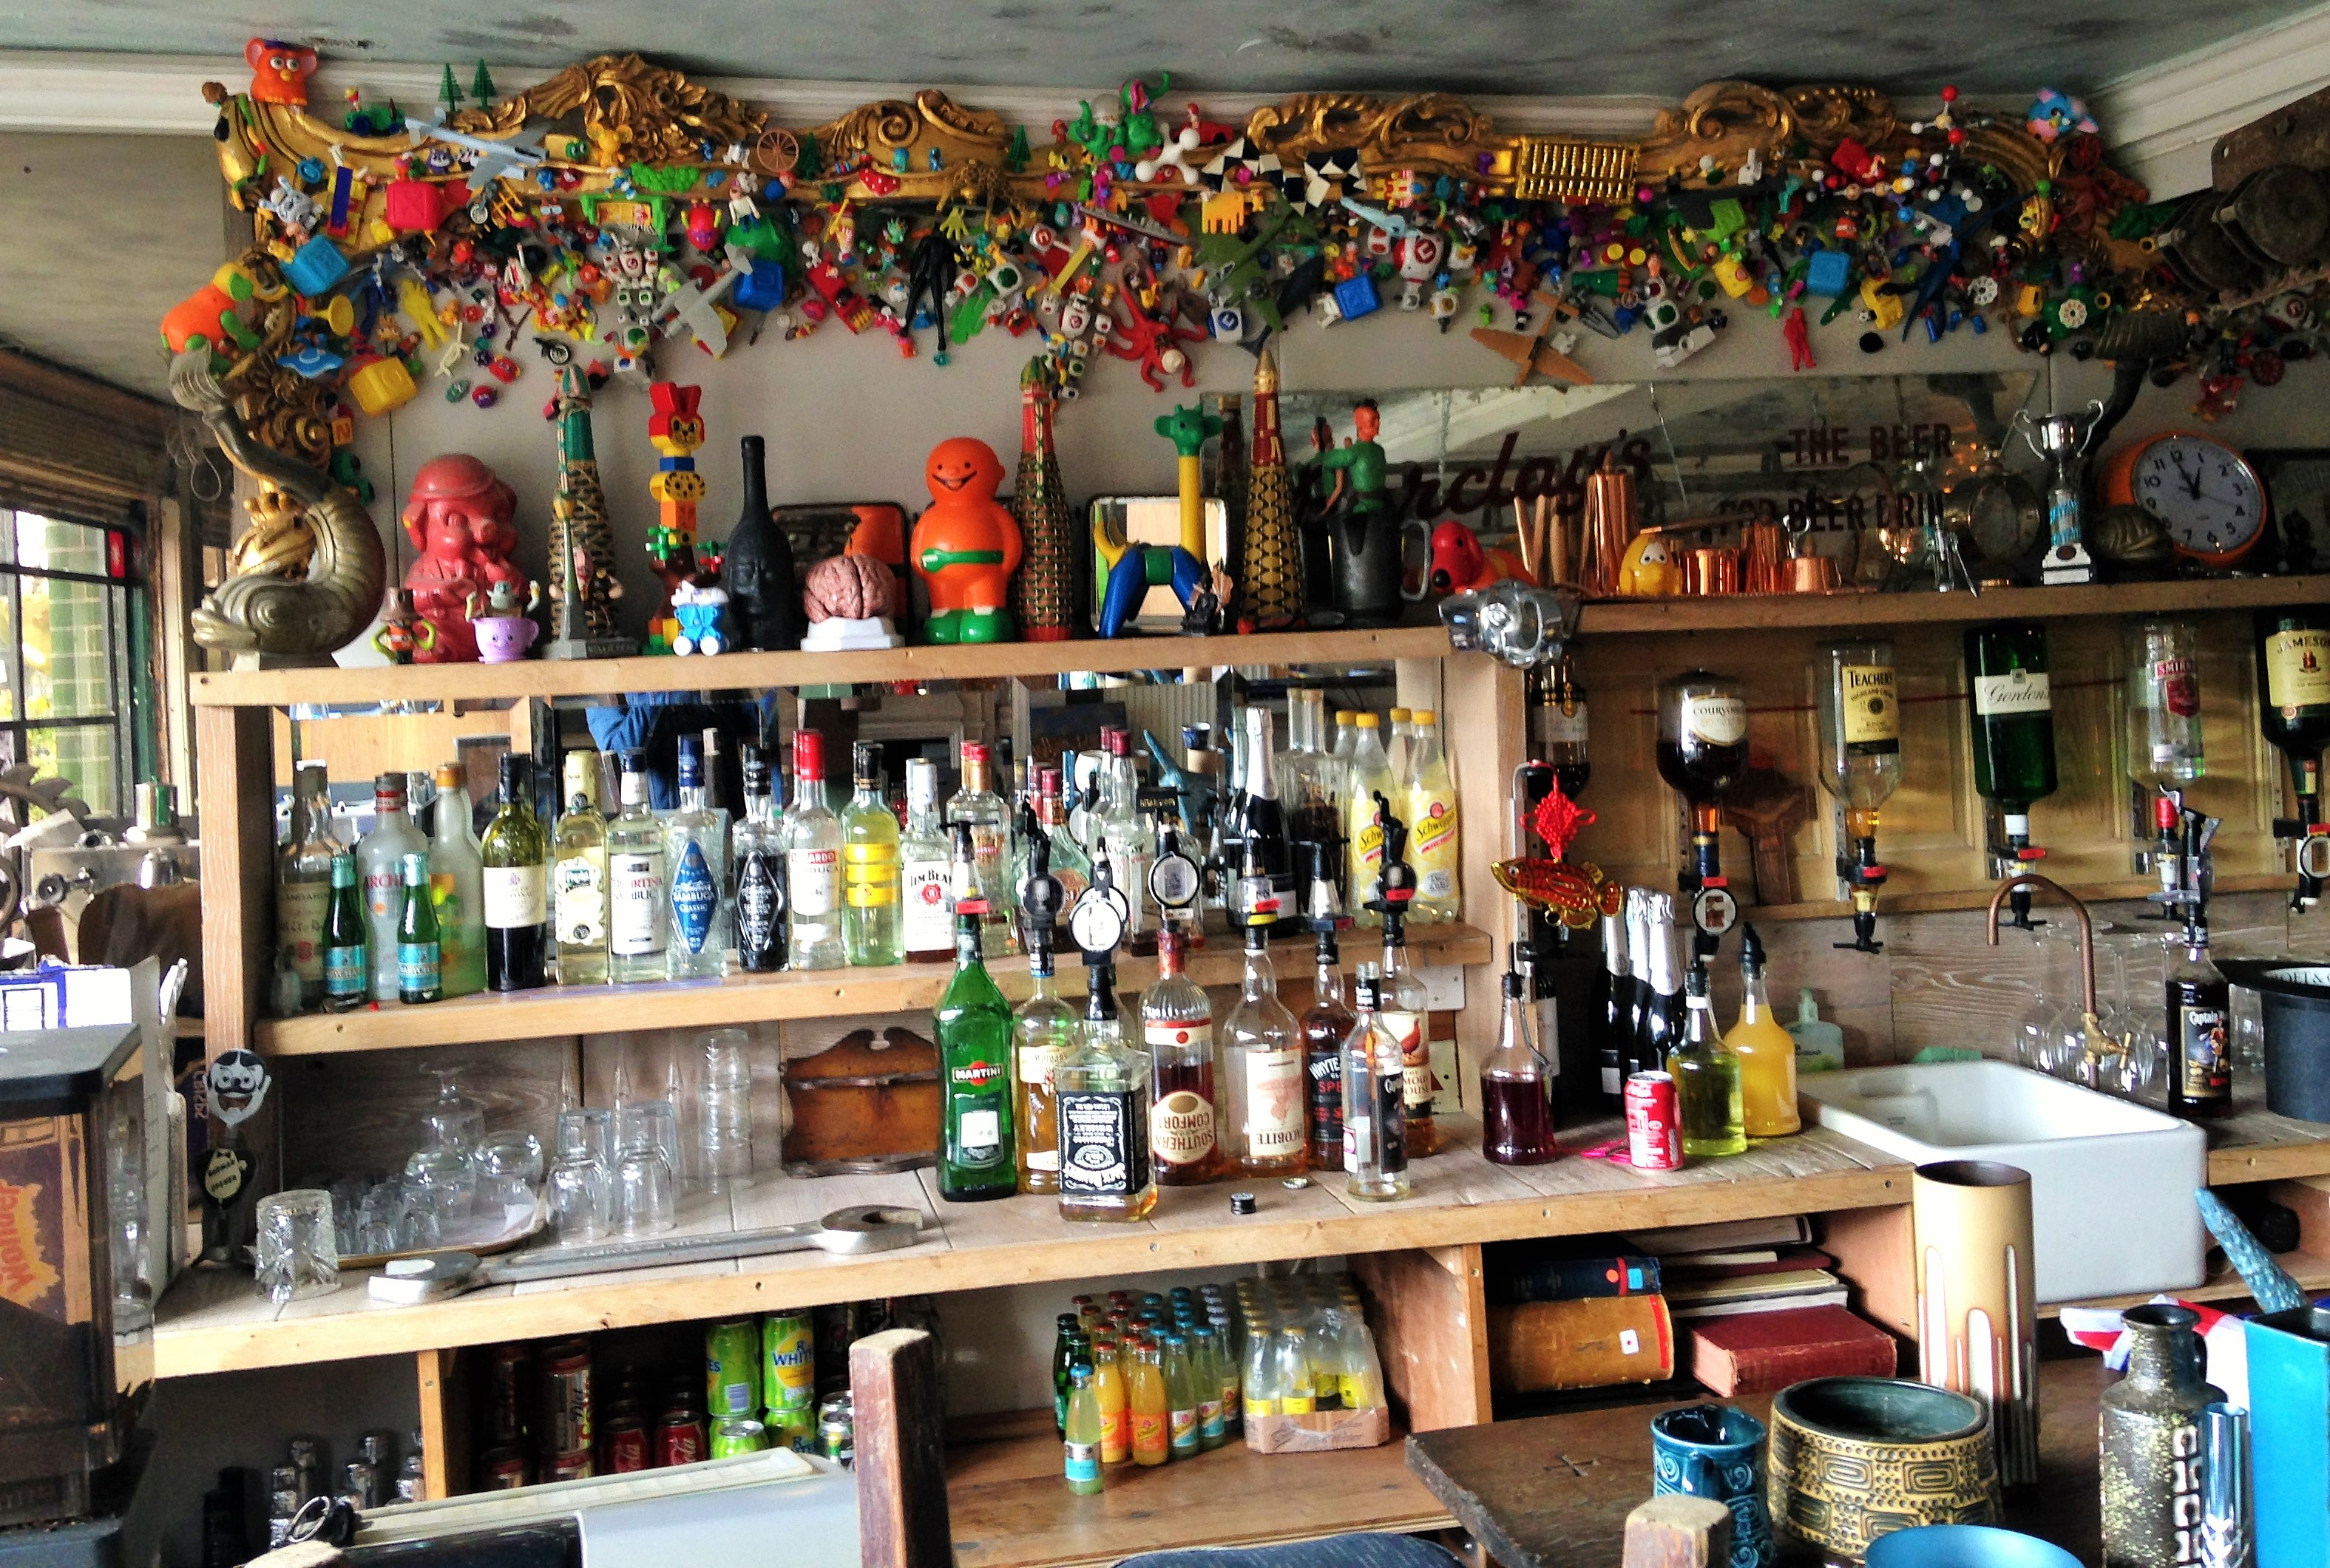 this is an old photo of the bar, which looks about 10% less chaotic now